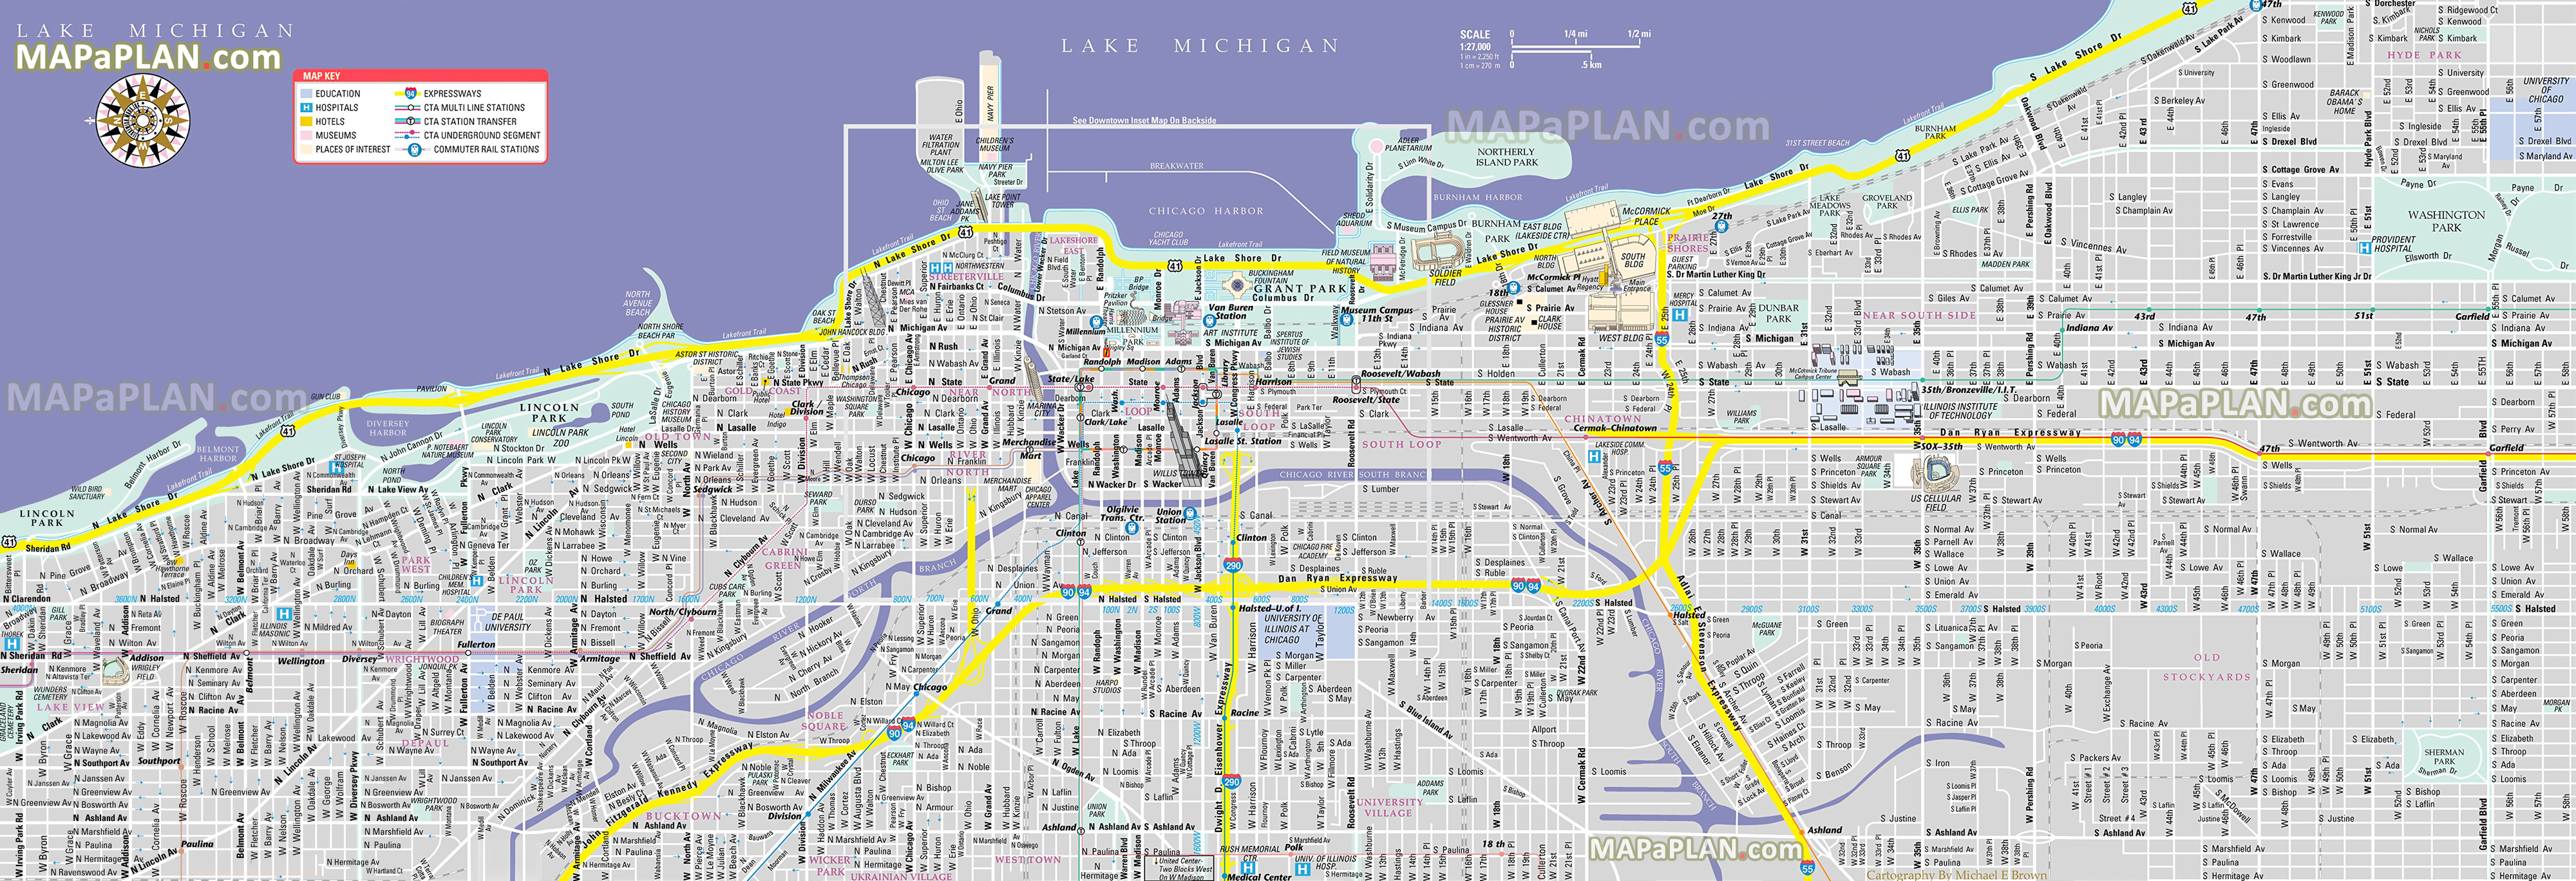 Printable Map Of Chicago Chicago maps   Top tourist attractions   Free, printable city